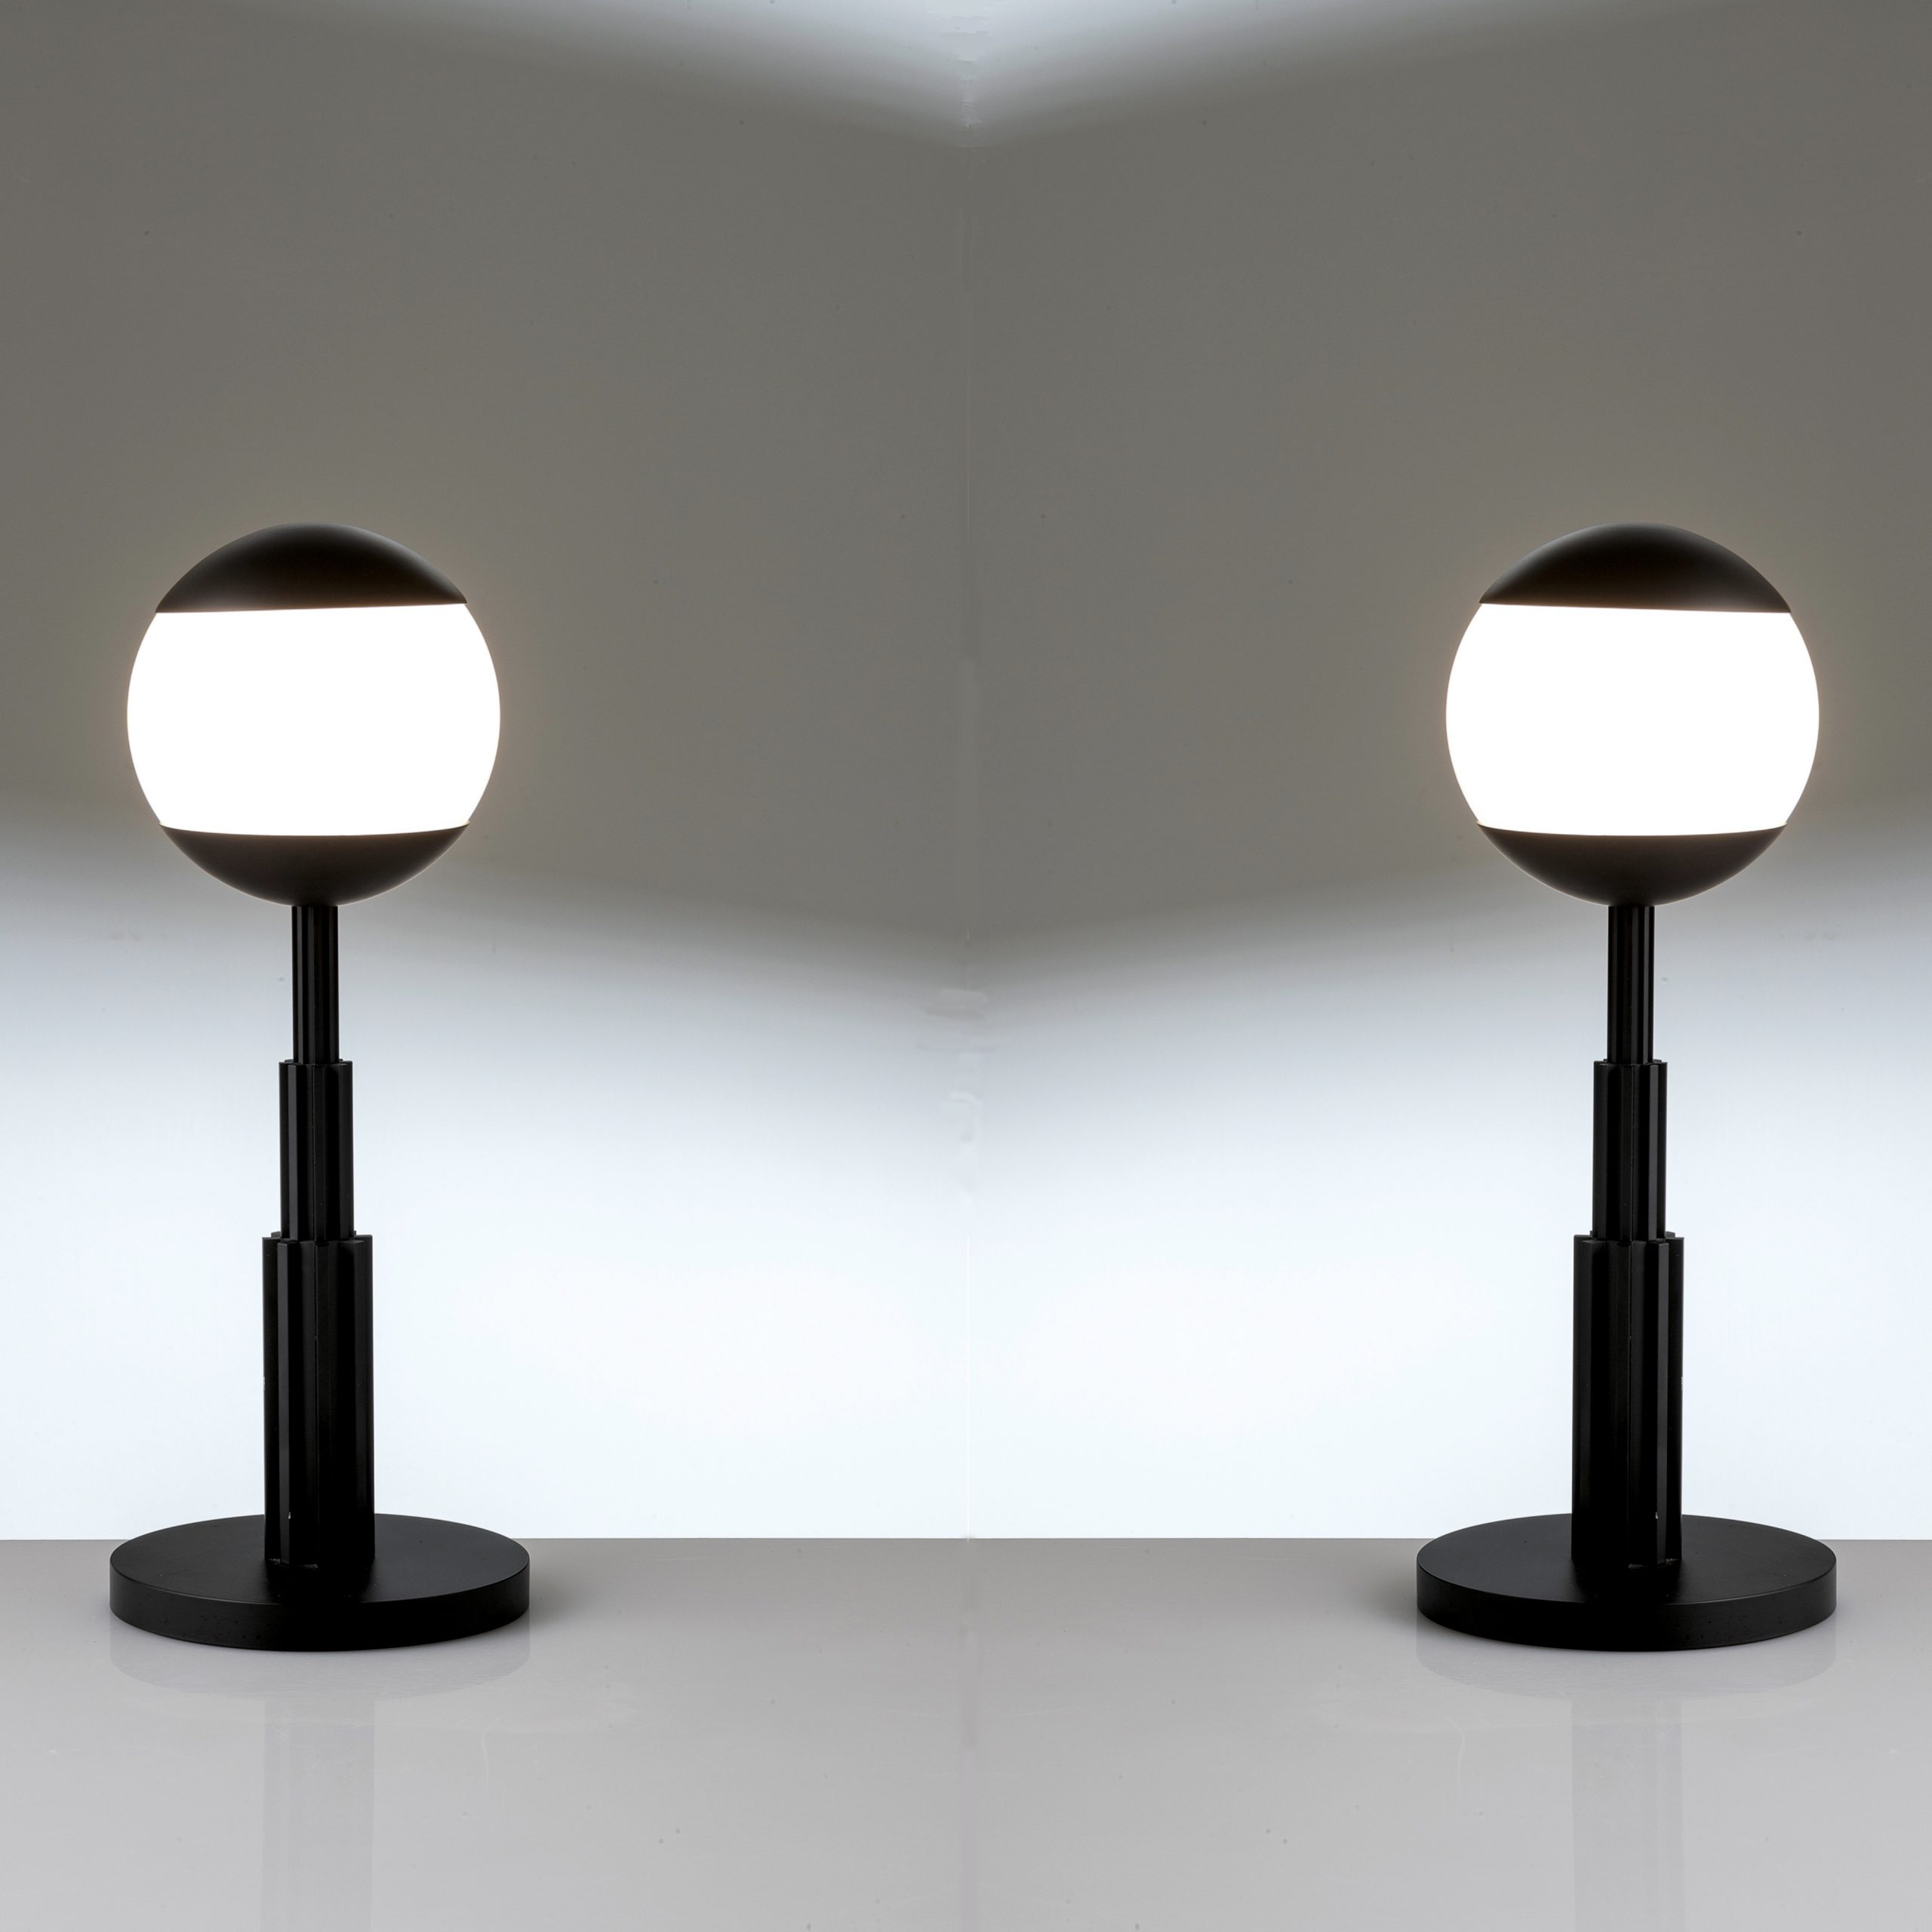 Aldo Rossi |                                  Pair of Prometeo table lamps